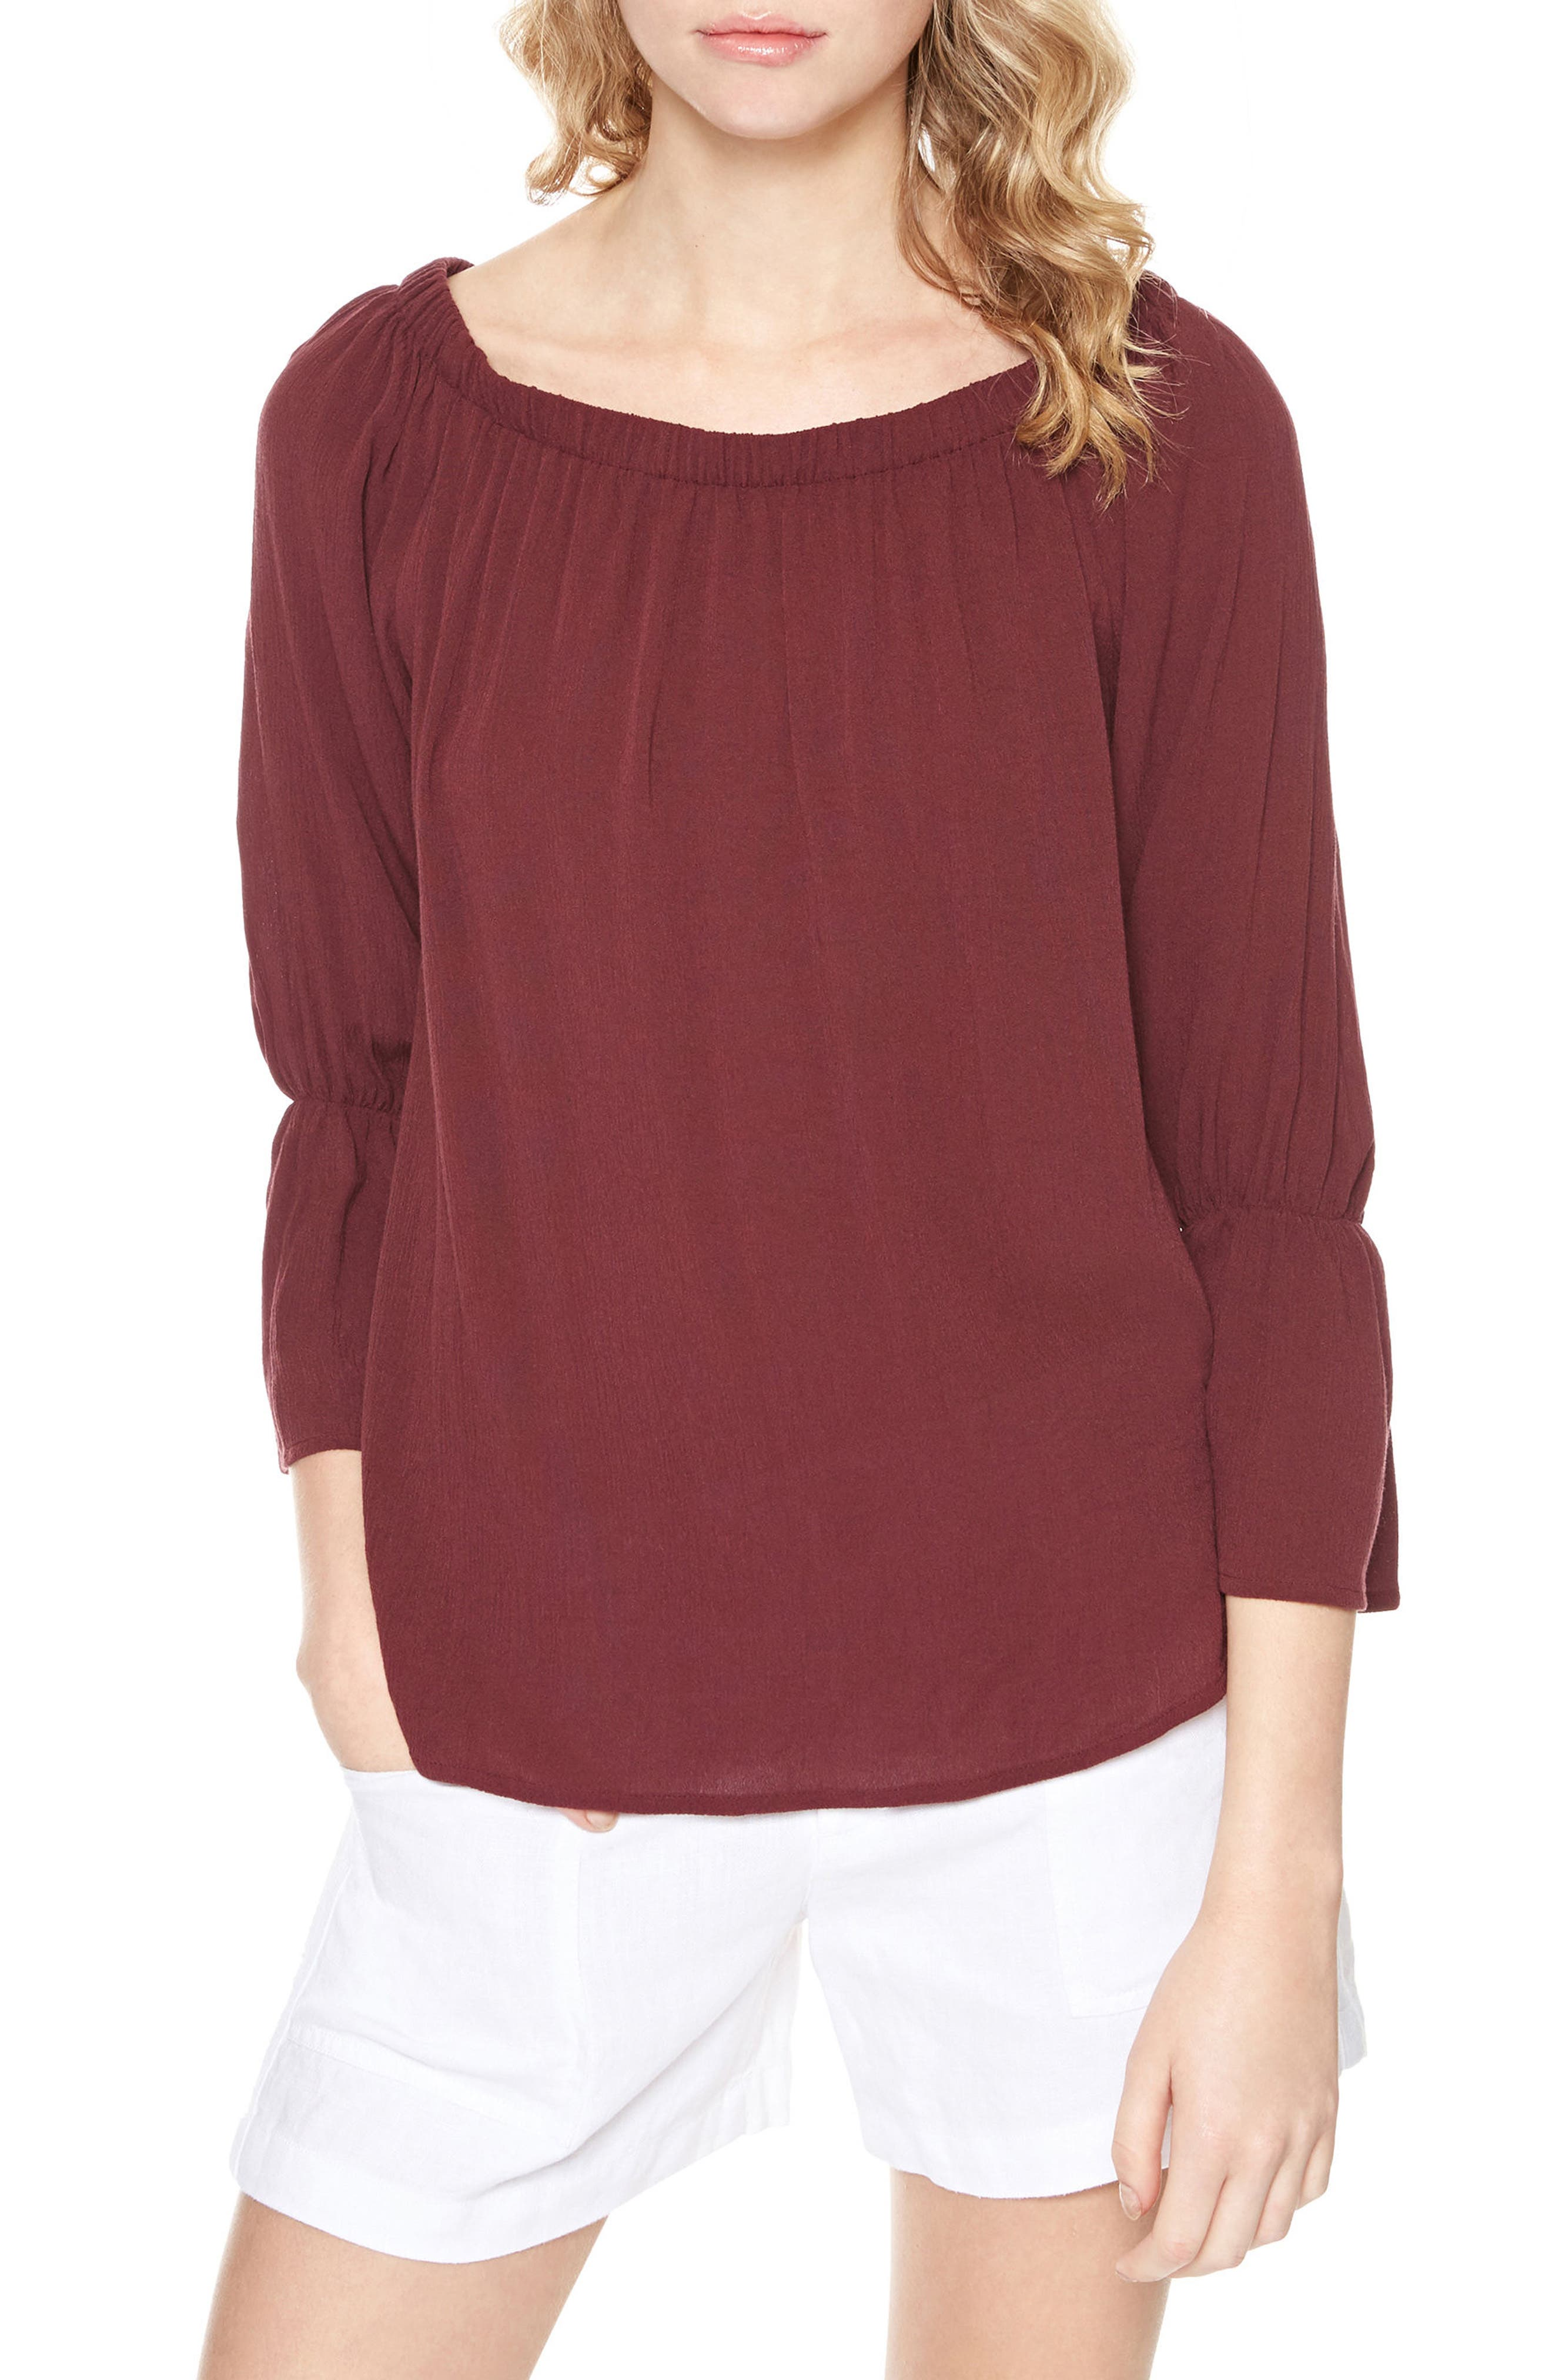 Alternate Image 1 Selected - Sanctuary Off the Shoulder Blouse (Regular & Petite)